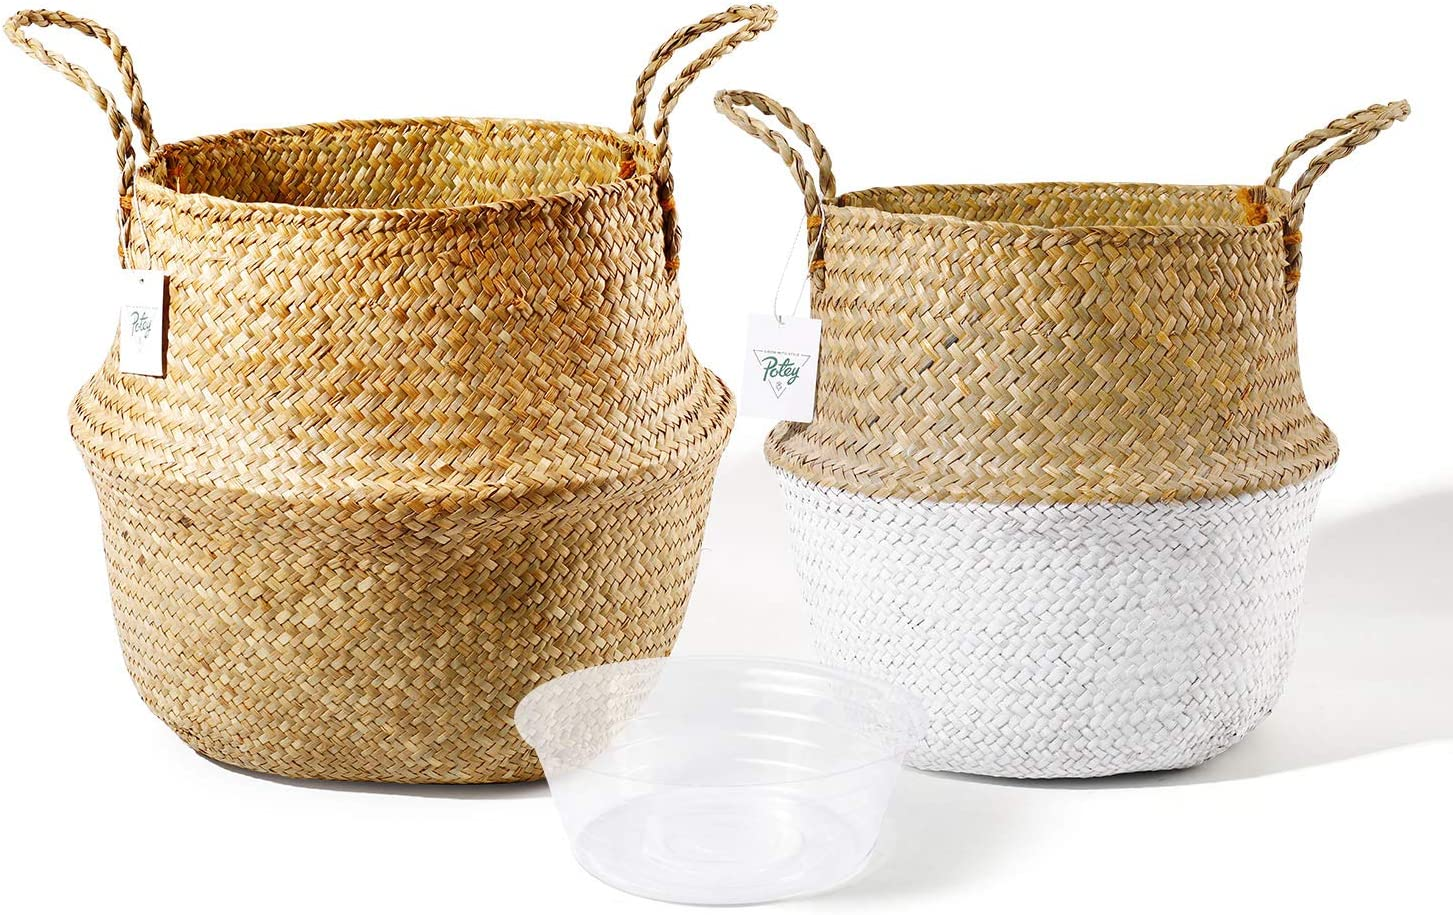 POTEY 720202 Seagrass Plant Basket Set of 2 - Hand Woven Belly Basket with Handles, Large Storage Laundry Picnic Plant Pot Cover Home Decor & Woven Straw Beach Bag (Large+Extra Large, Original+White)